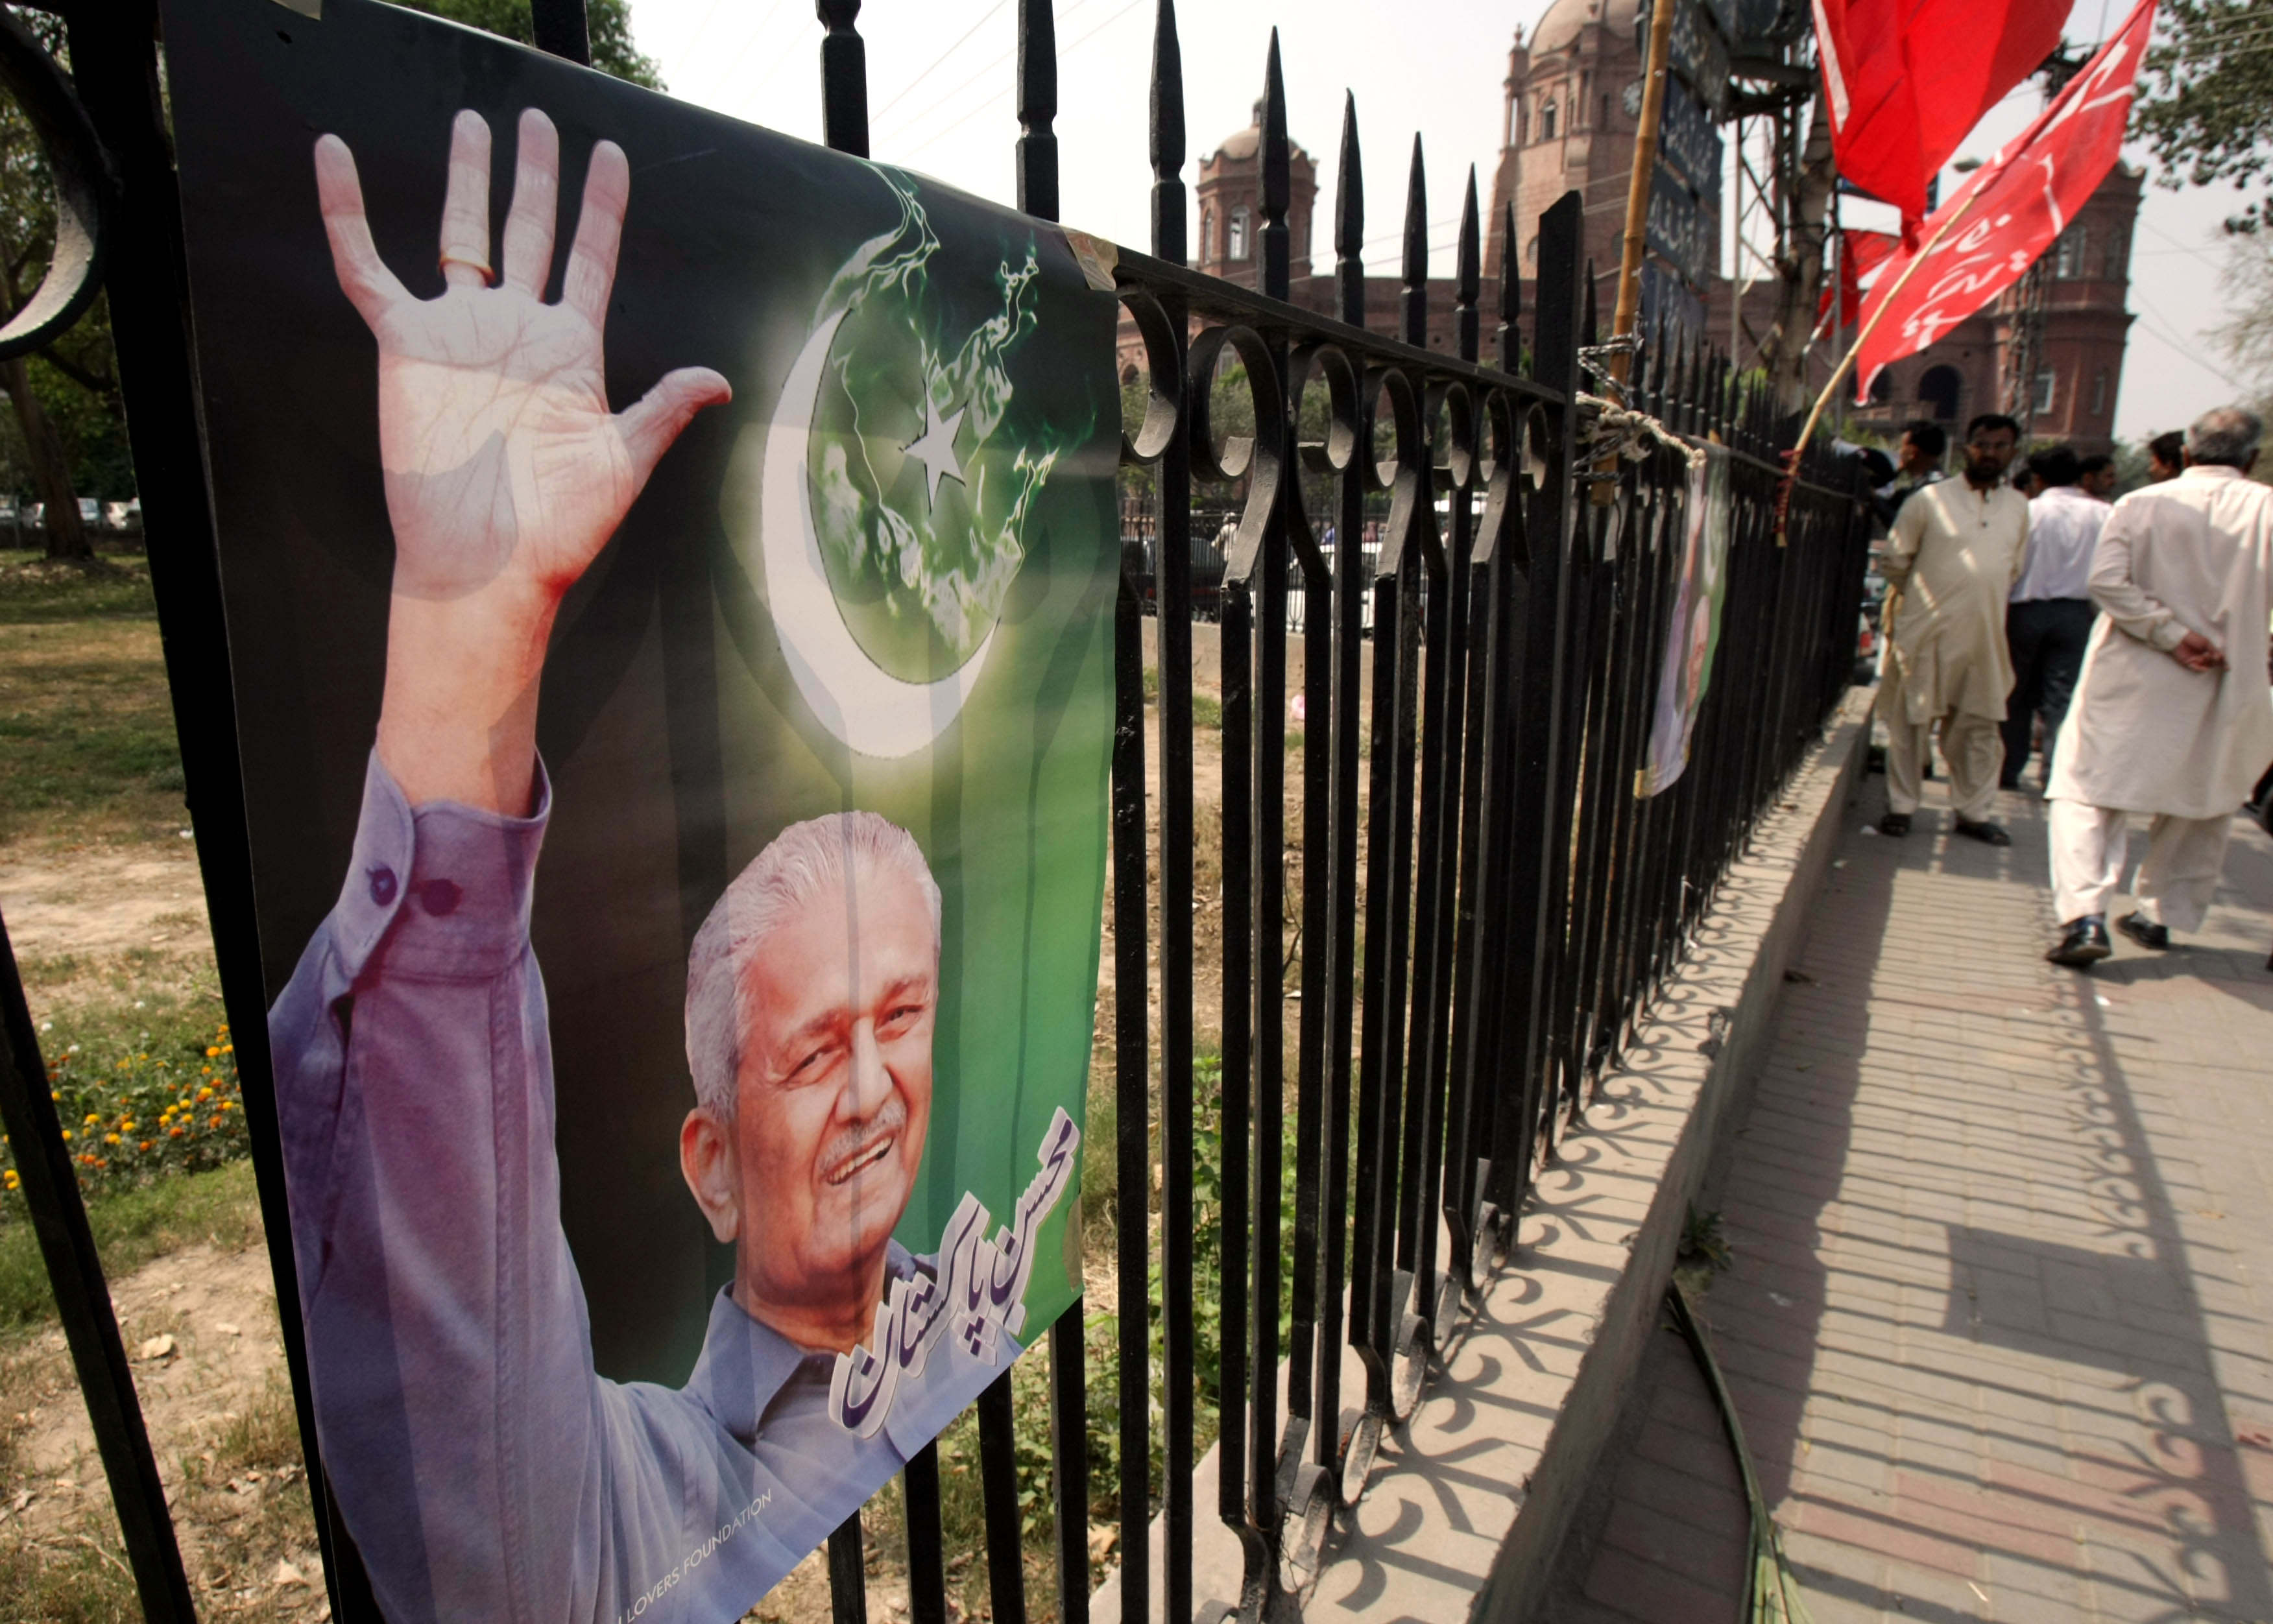 A poster on a fence in Lahore, Pakistan shows Pakistani nuclear scientist A.Q. Khan, glorified by many of his countrymen but reviled by Western govern...